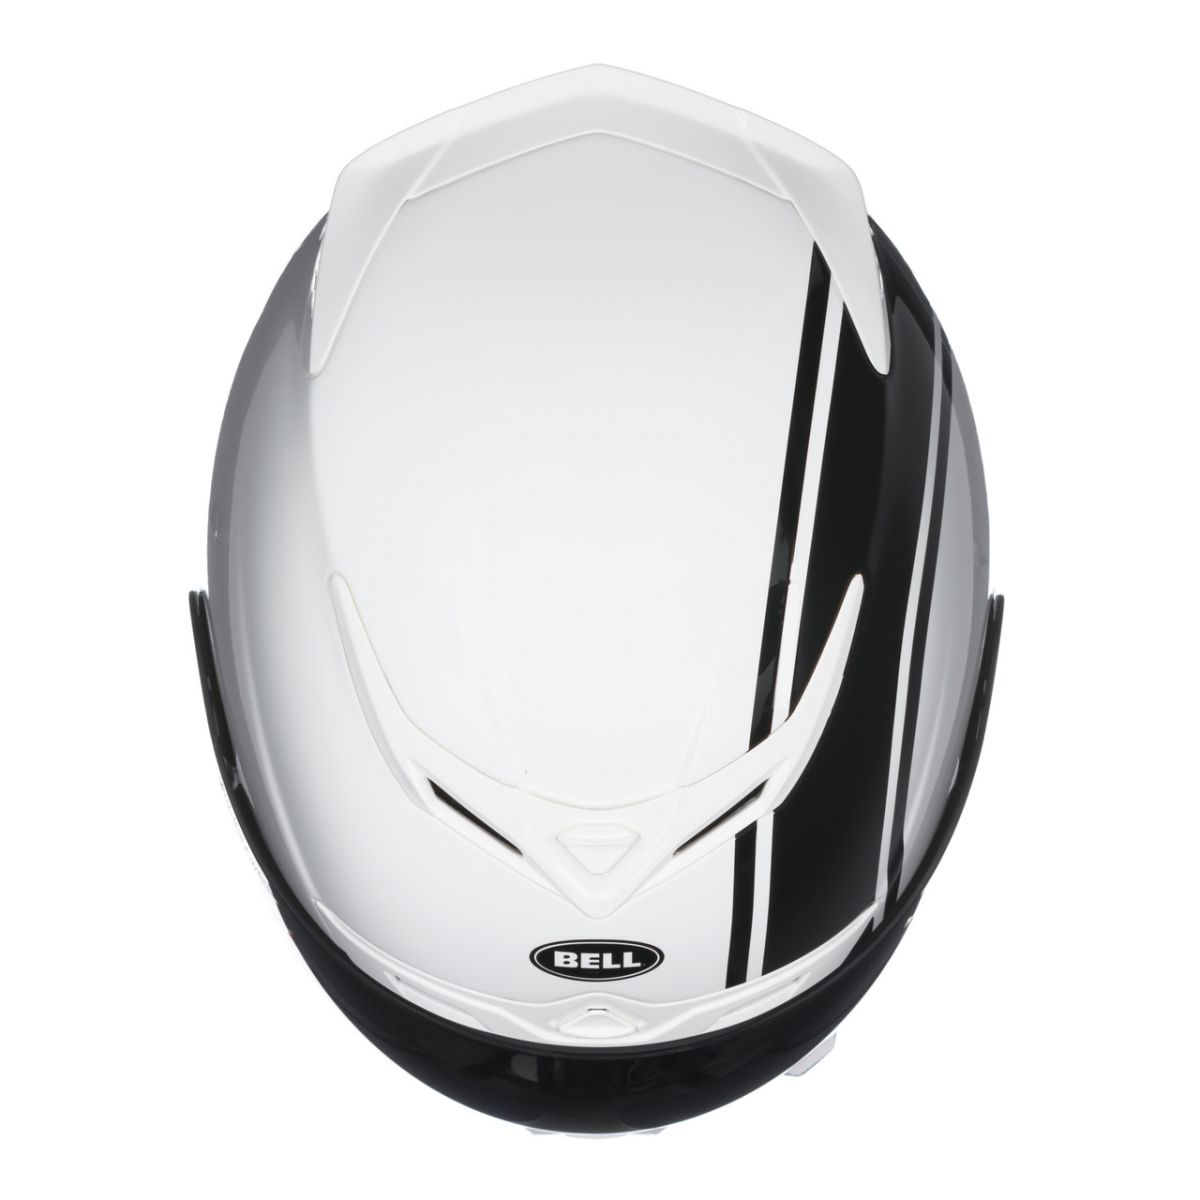 Capacete Bell RS-1 Linear Pearl White Bi-Composto (RS1) Só 61/62-XL com Vídeo  - Super Bike - Loja Oficial Alpinestars